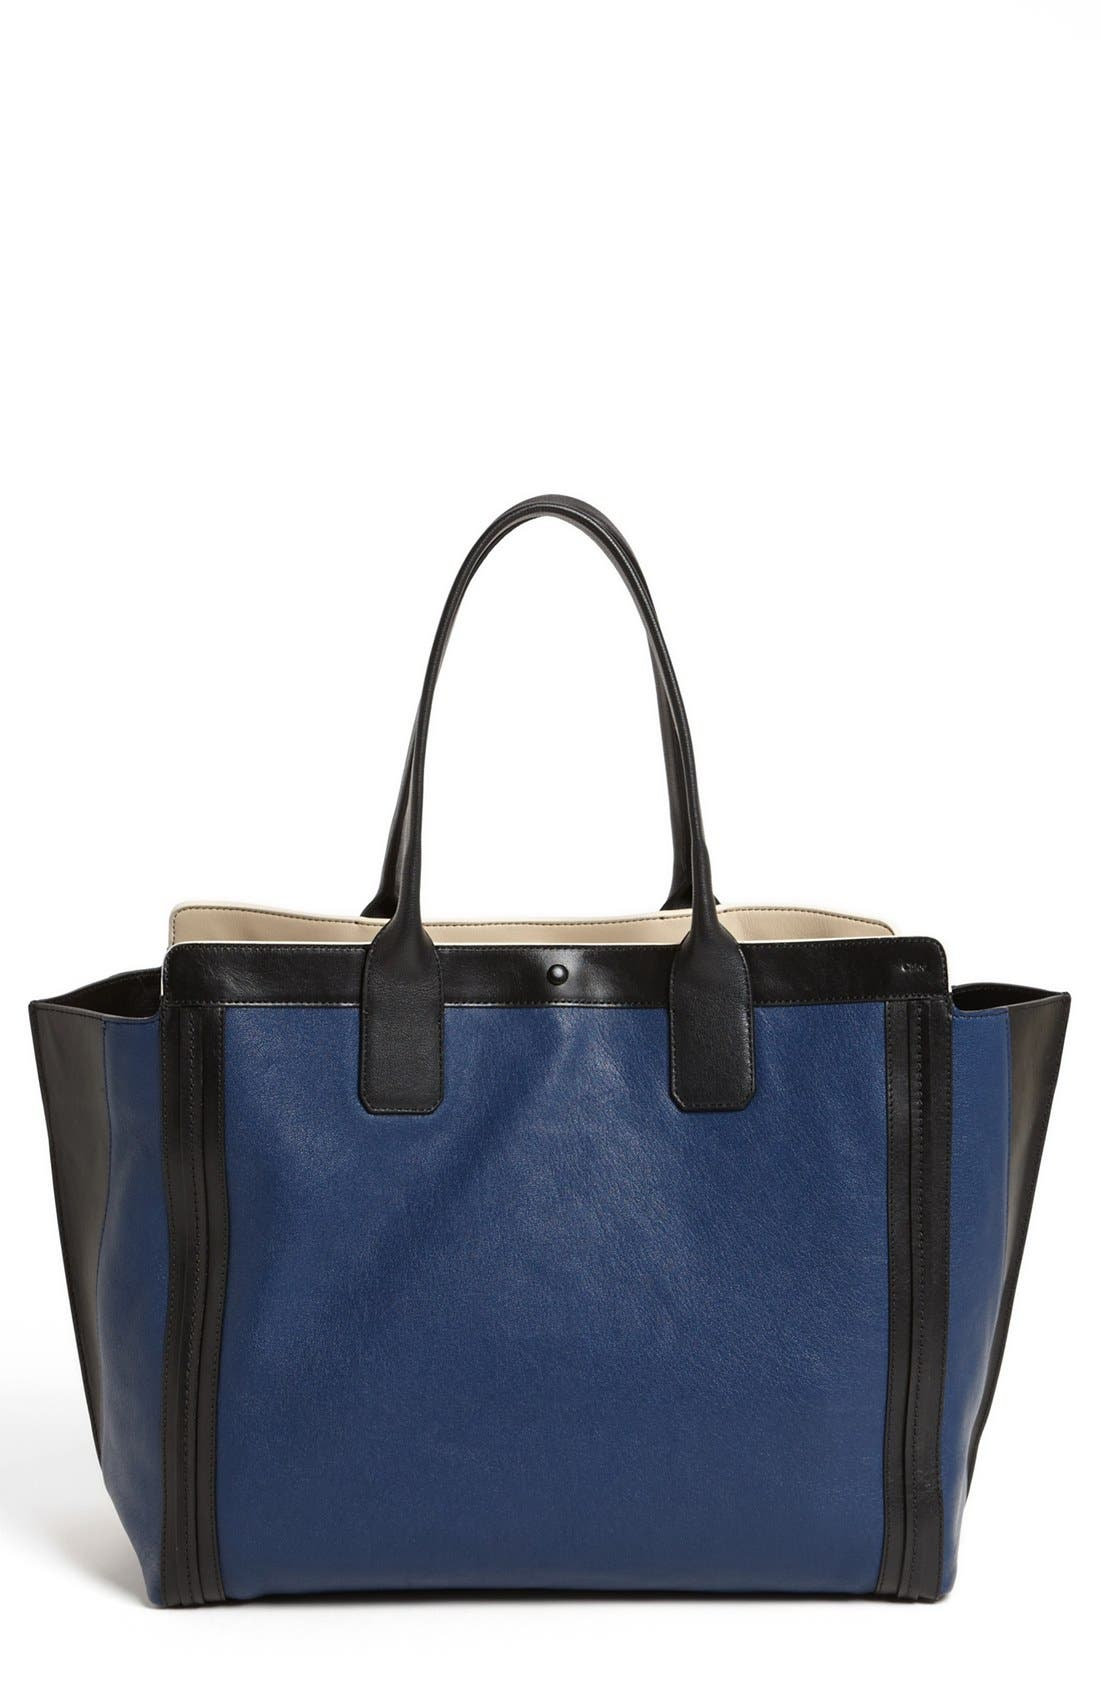 Alternate Image 1 Selected - Chloé 'Alison' Leather Tote